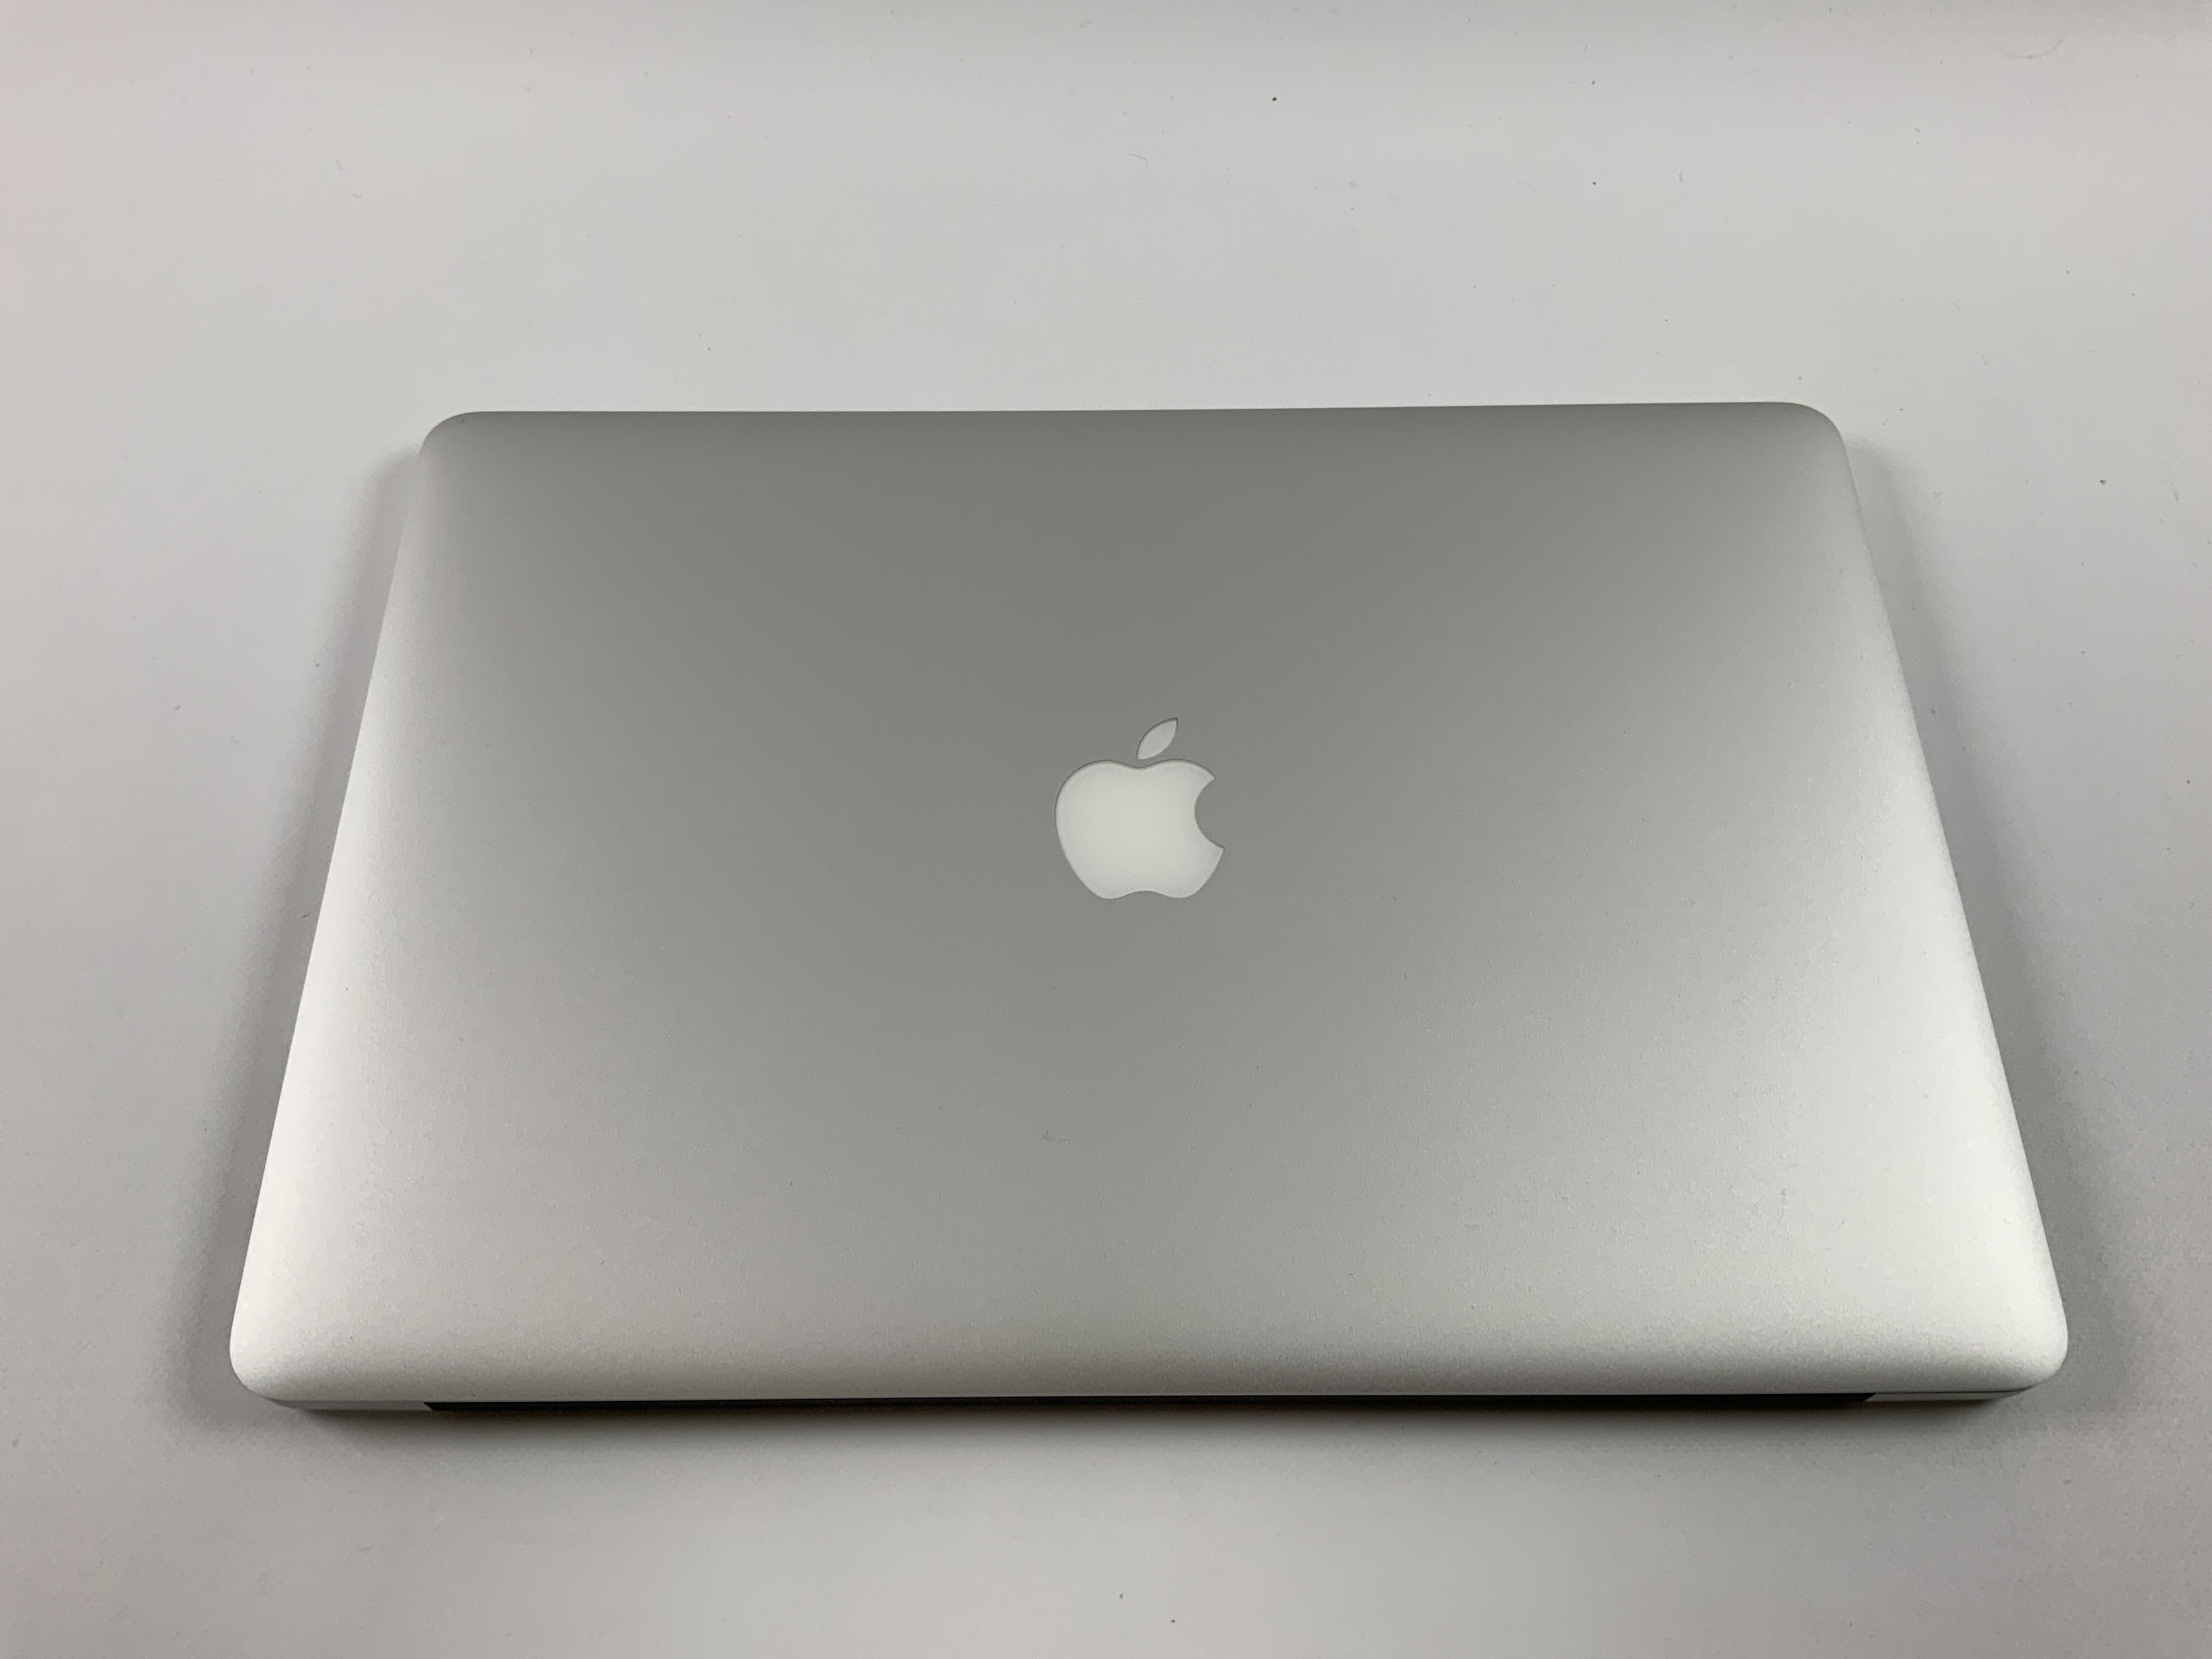 "MacBook Pro Retina 15"" Mid 2015 (Intel Quad-Core i7 2.2 GHz 16 GB RAM 1 TB SSD), Intel Quad-Core i7 2.2 GHz, 16 GB RAM, 1 TB SSD, Kuva 2"